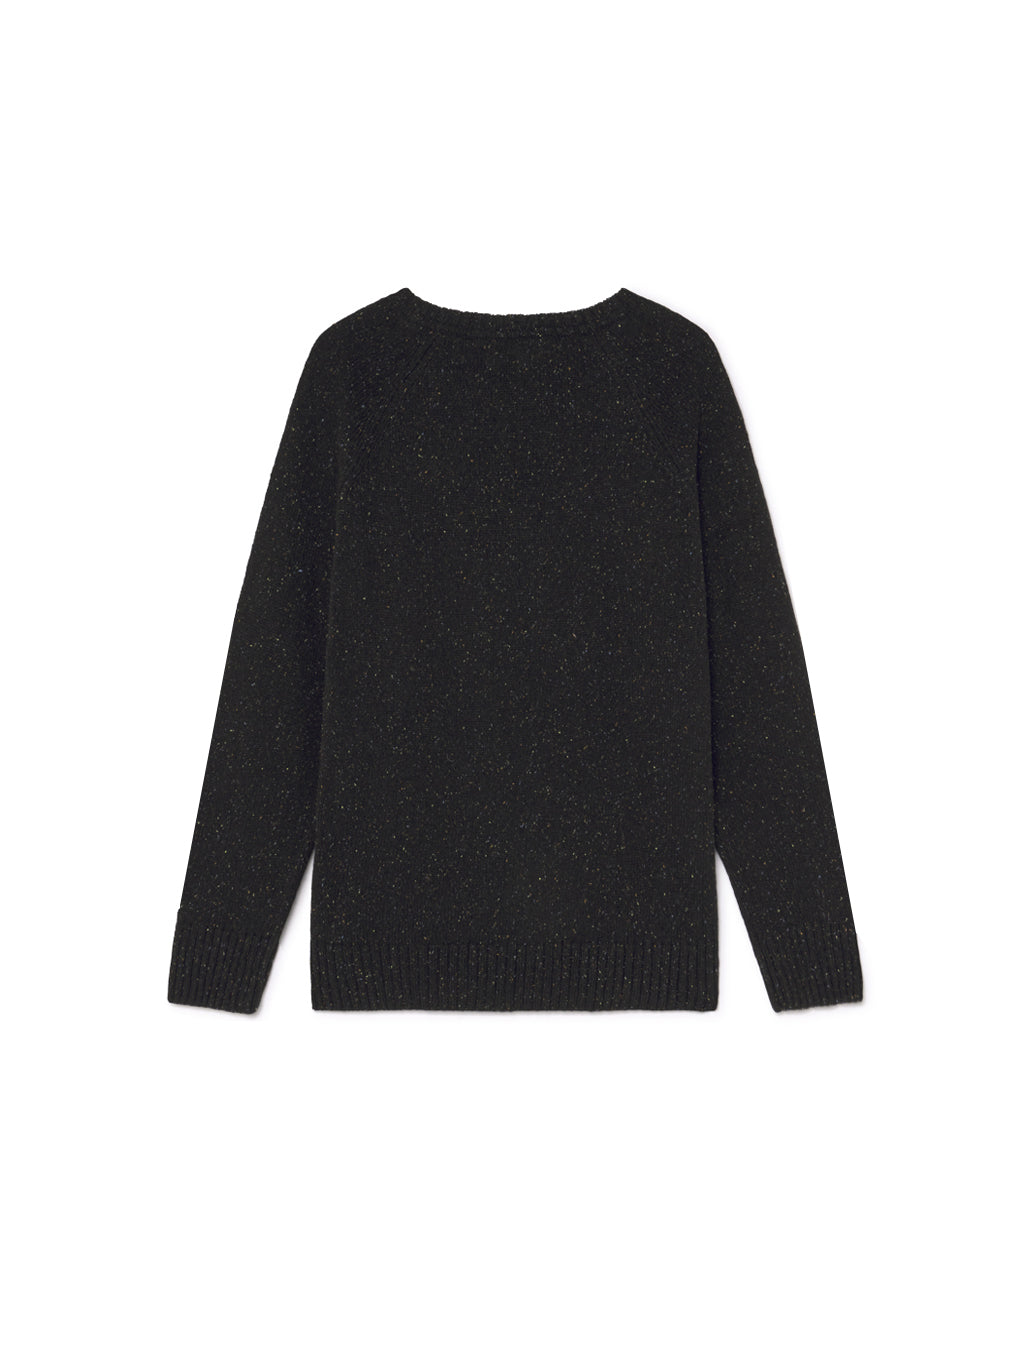 TWOTHIRDS Mens Knit: Anaa - Black back